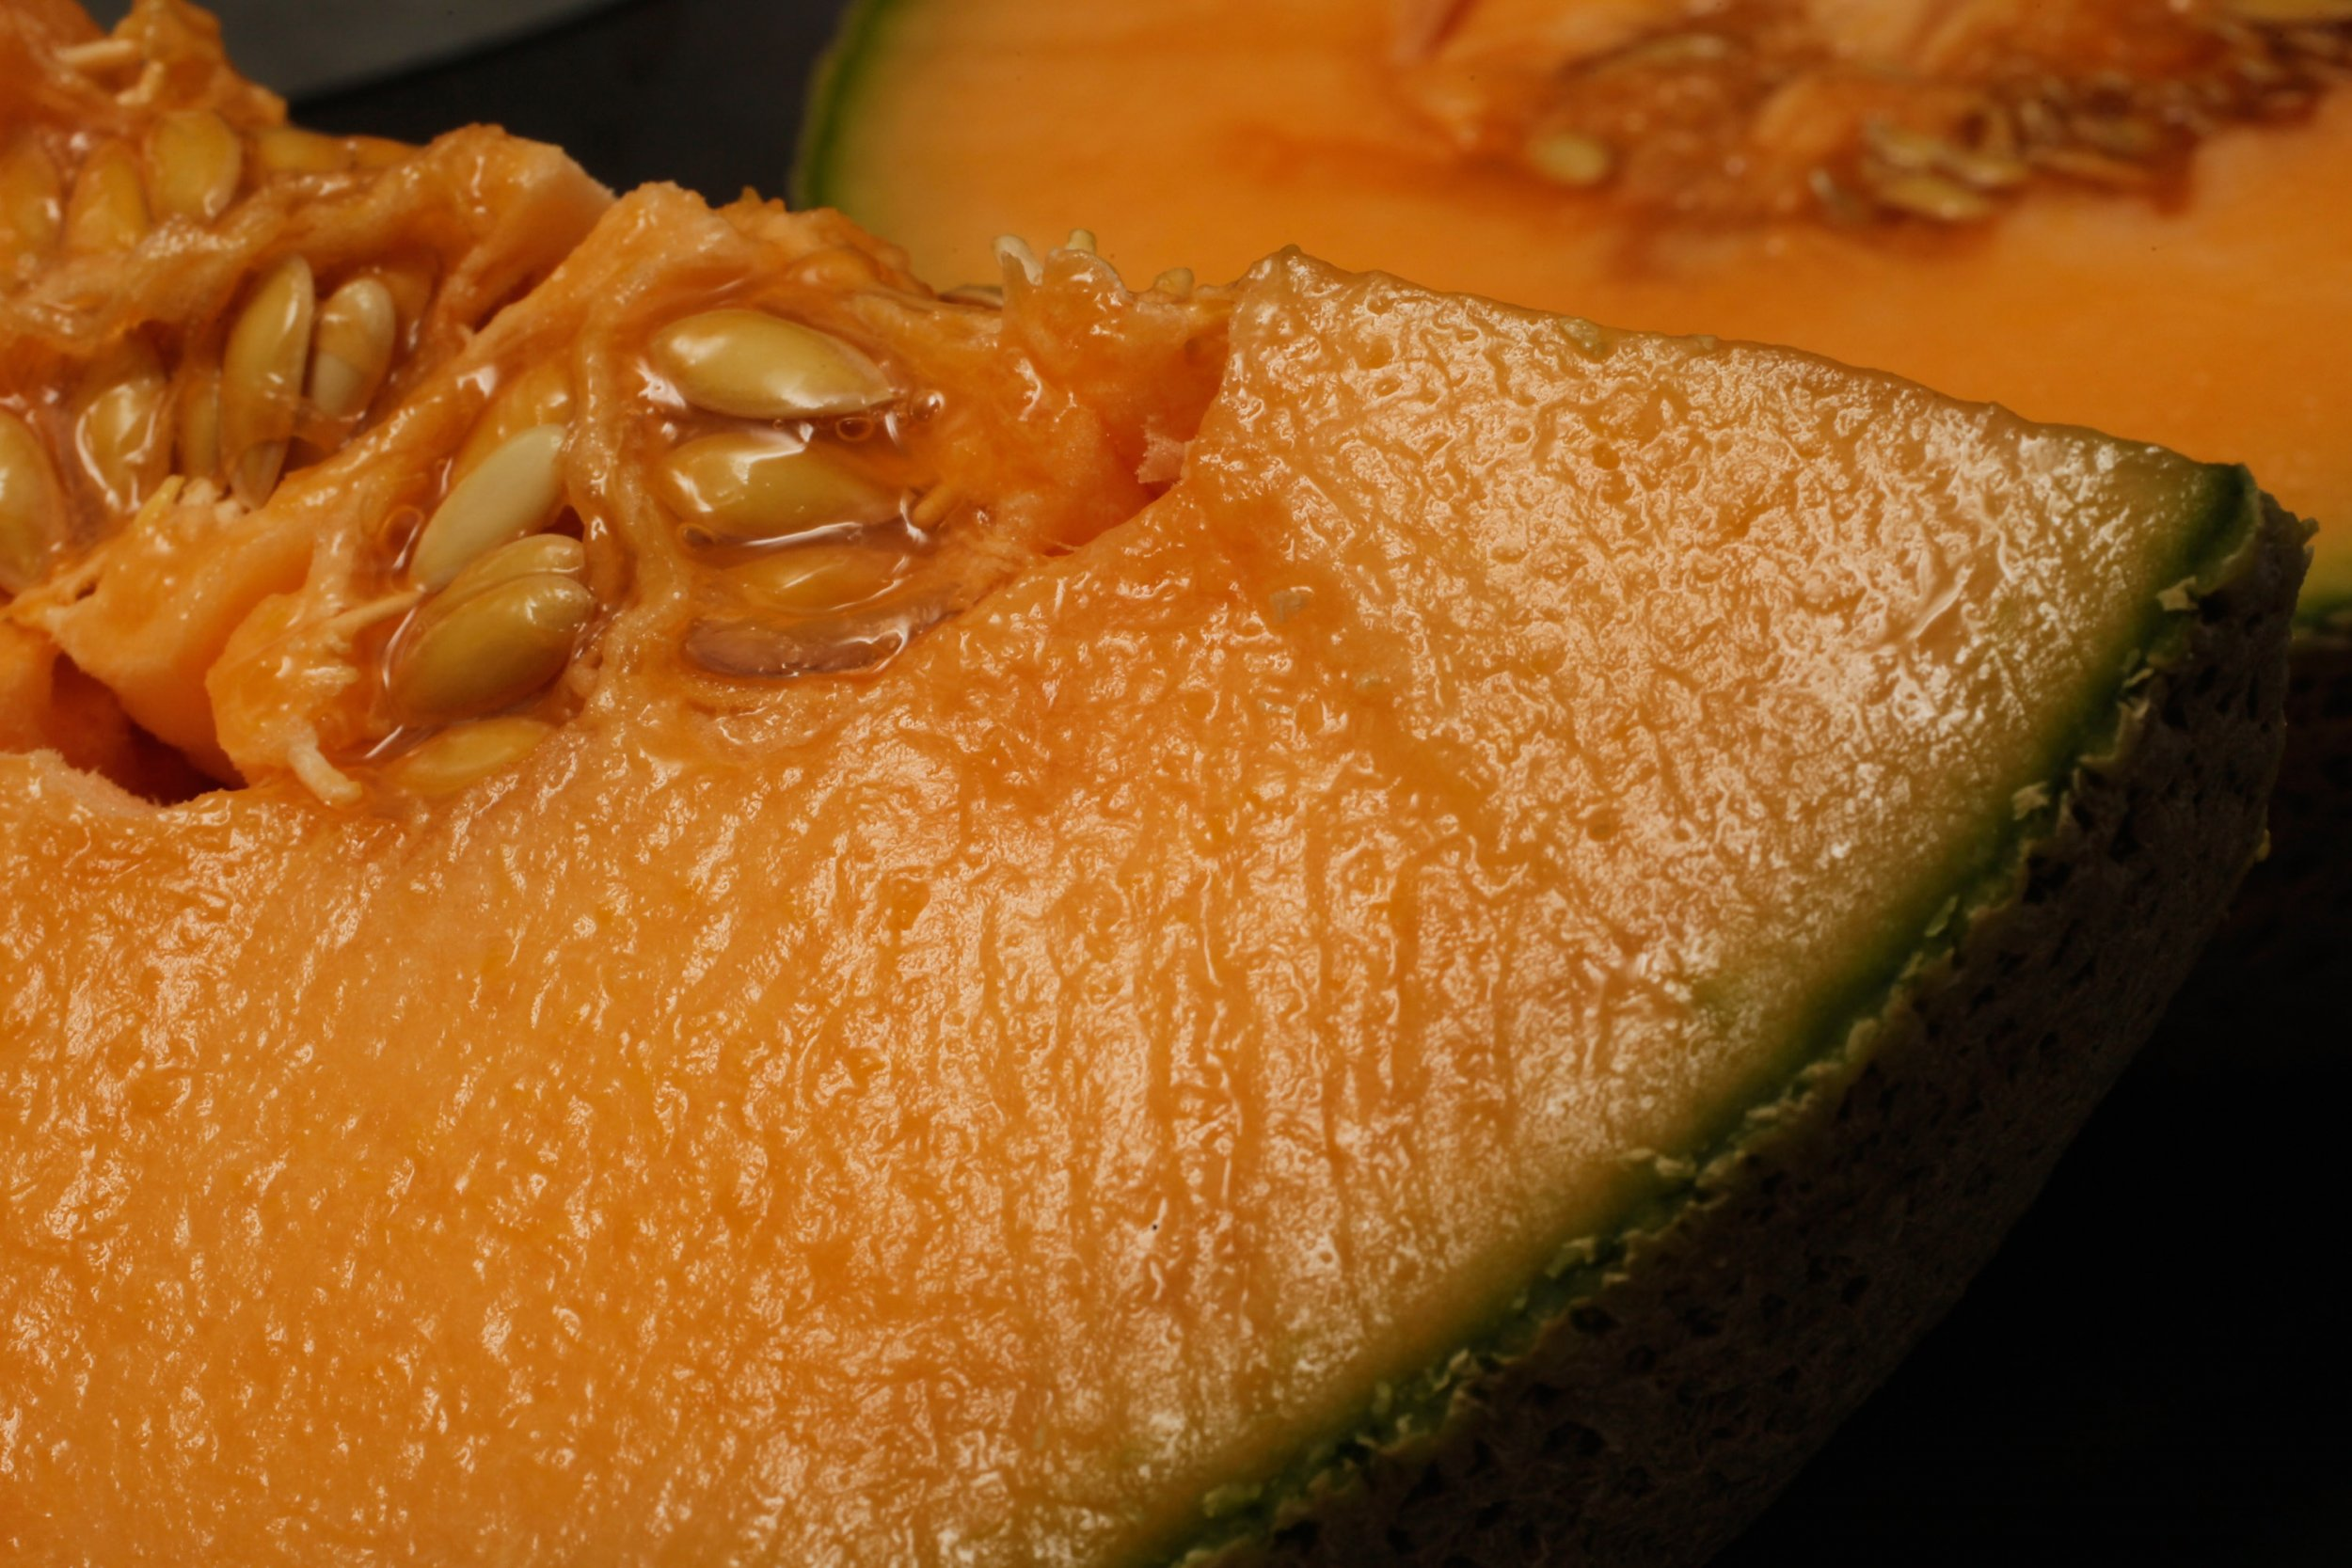 Three Dead After Eating Contaminated Cantaloupe Listeria infections have been reported from california to virginia, the centers for disease the source of the outbreak has been traced to cantaloupes grown at jensen farms in granada, colorado. three dead after eating contaminated